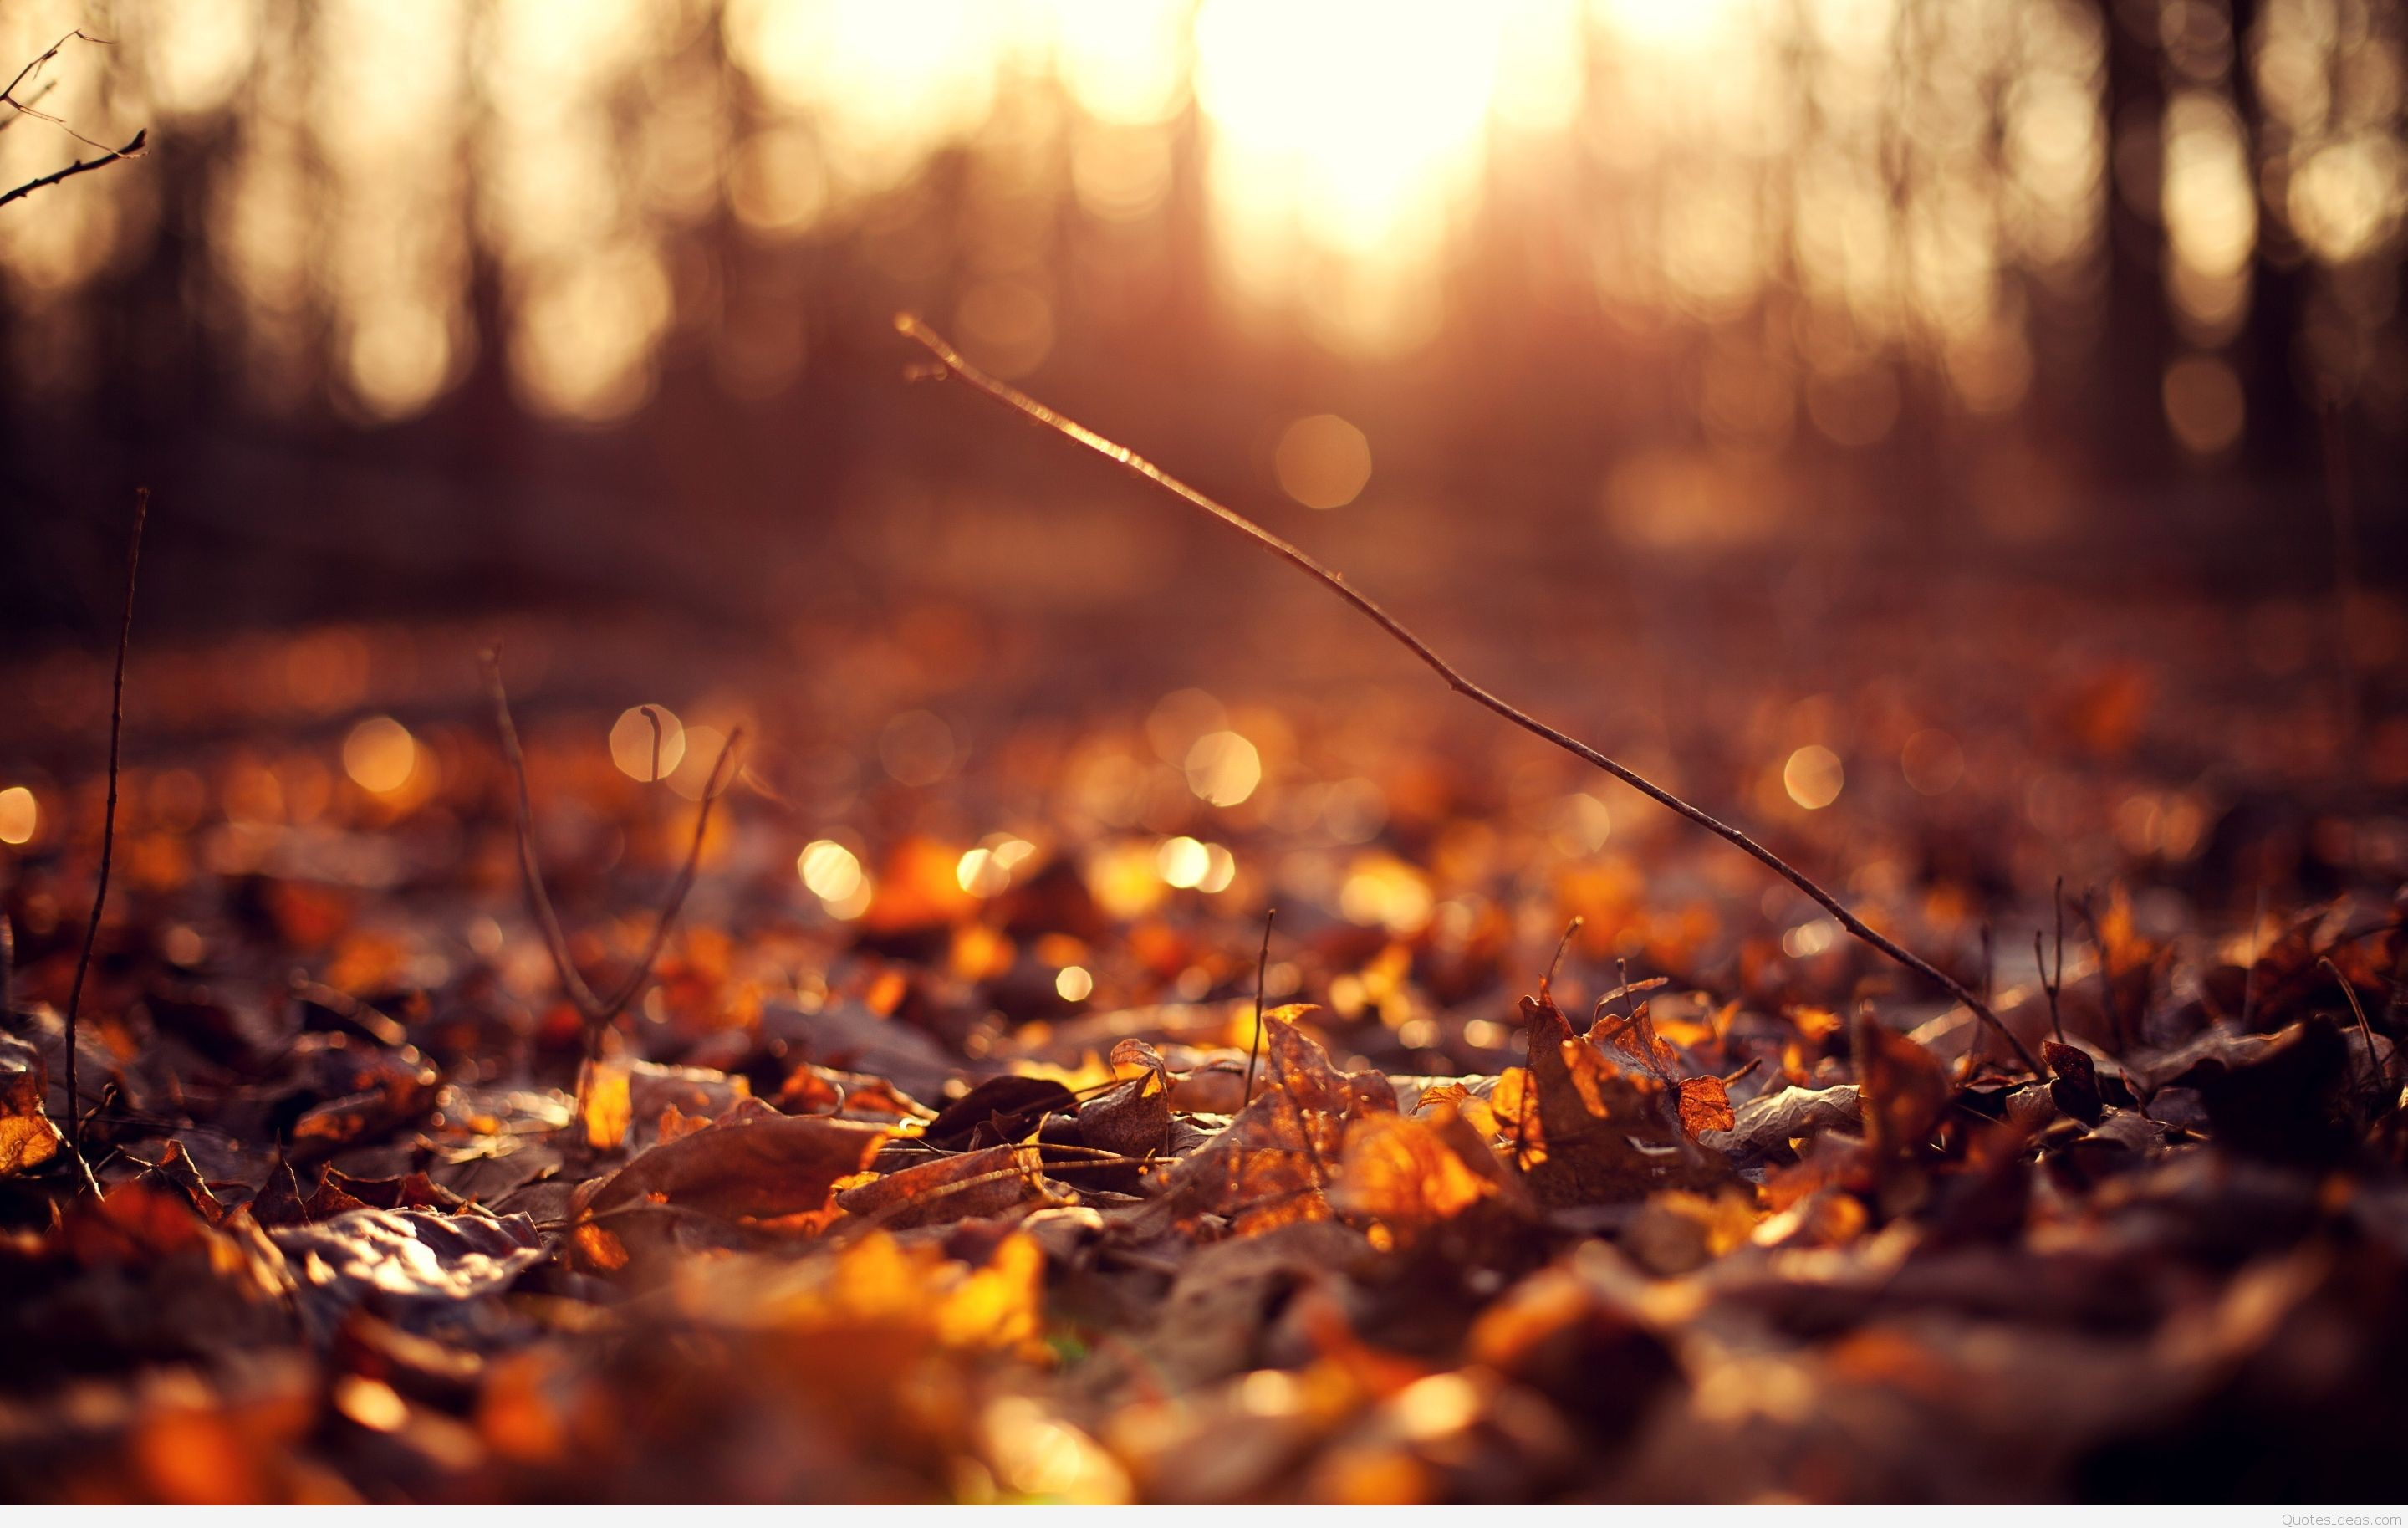 Autumn Leaves Falling Hd Wallpaper Autumn Leaves Background 183 ① Download Free Awesome High